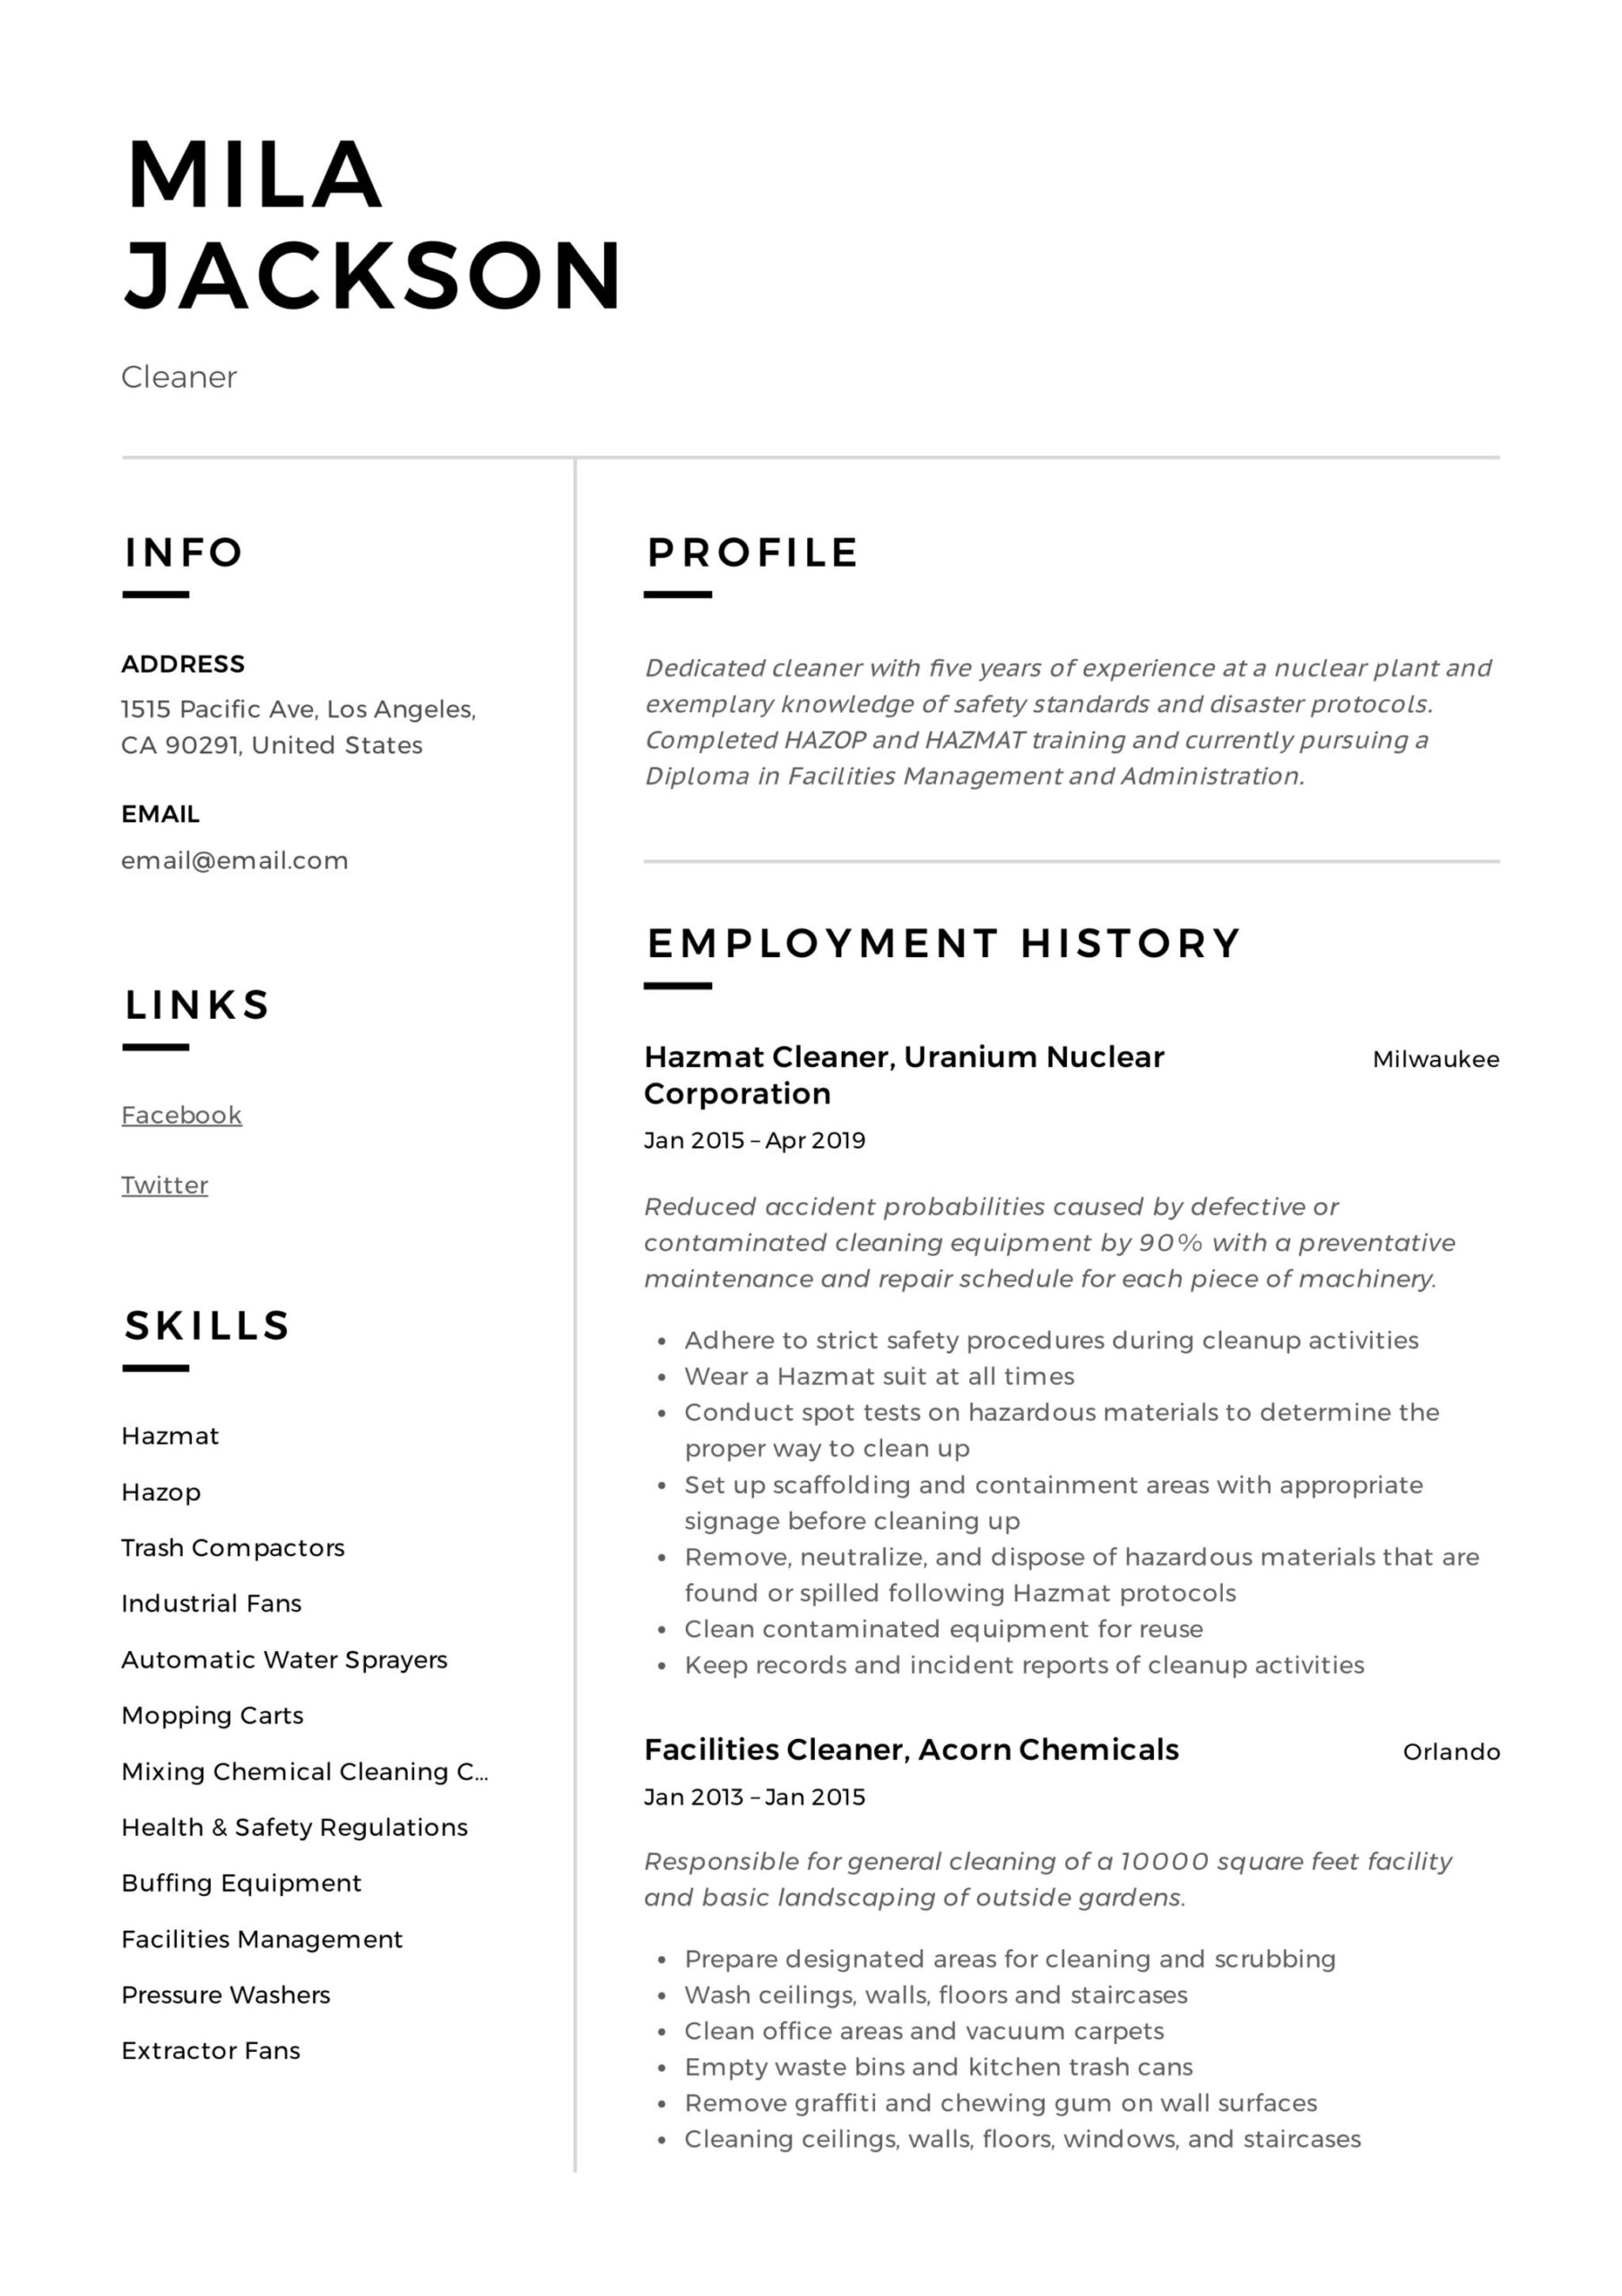 cleaner resume writing guide templates pdf home cleaning sample mila objective for Resume Home Cleaning Resume Sample